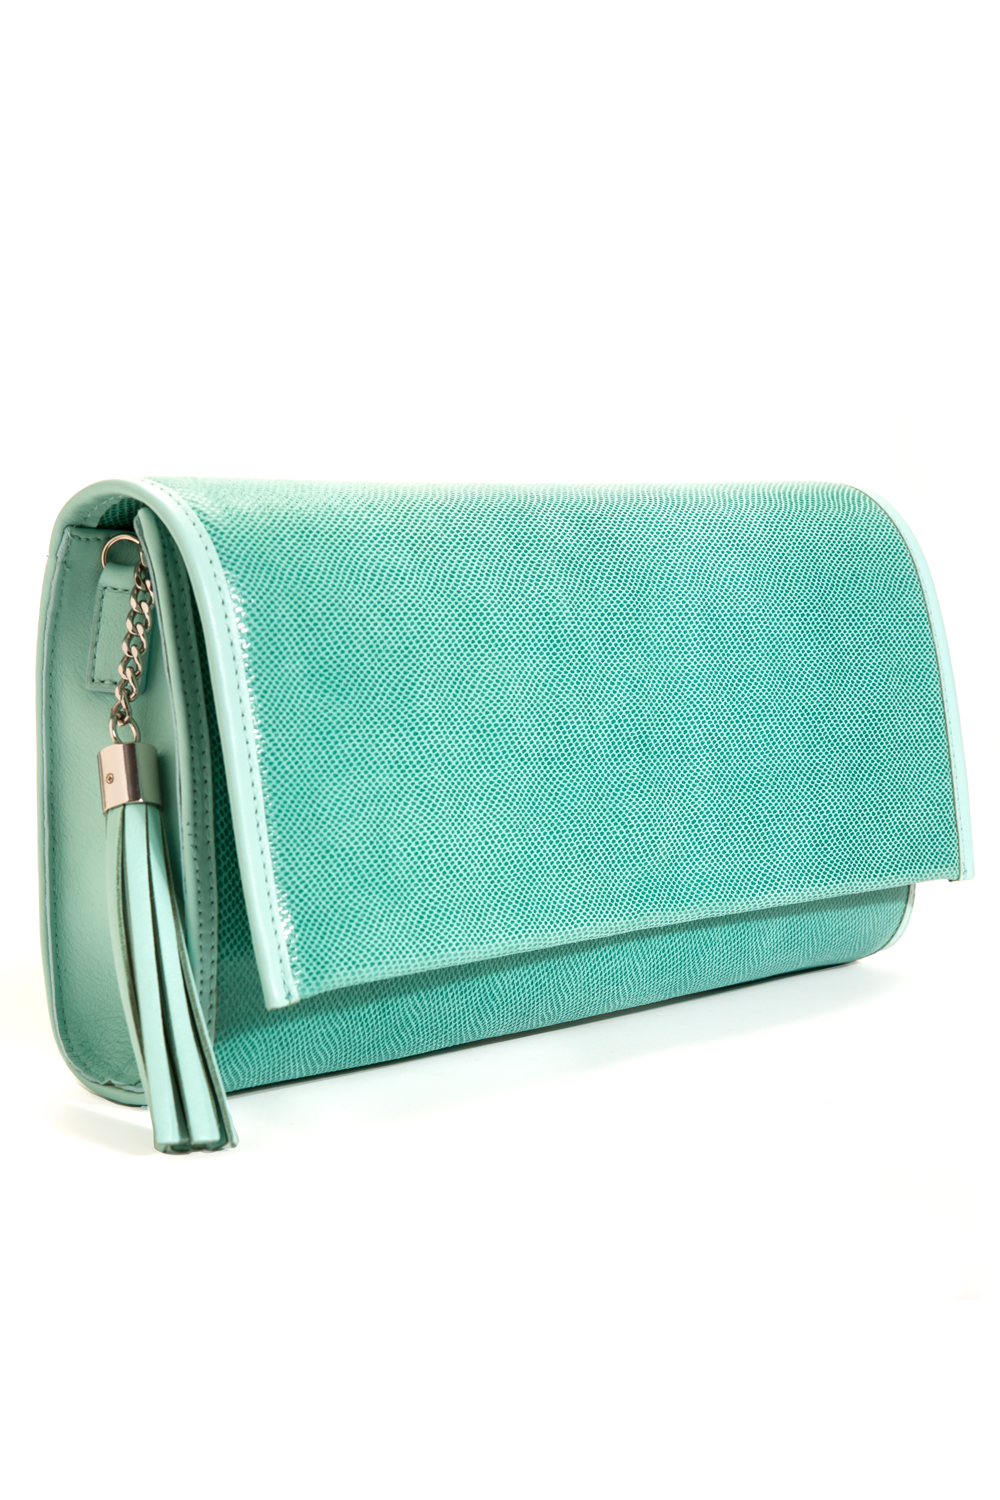 'Cara' Envelope Clutch in Iceberg Snake-Effect Leather | Mel Boteri | Side View